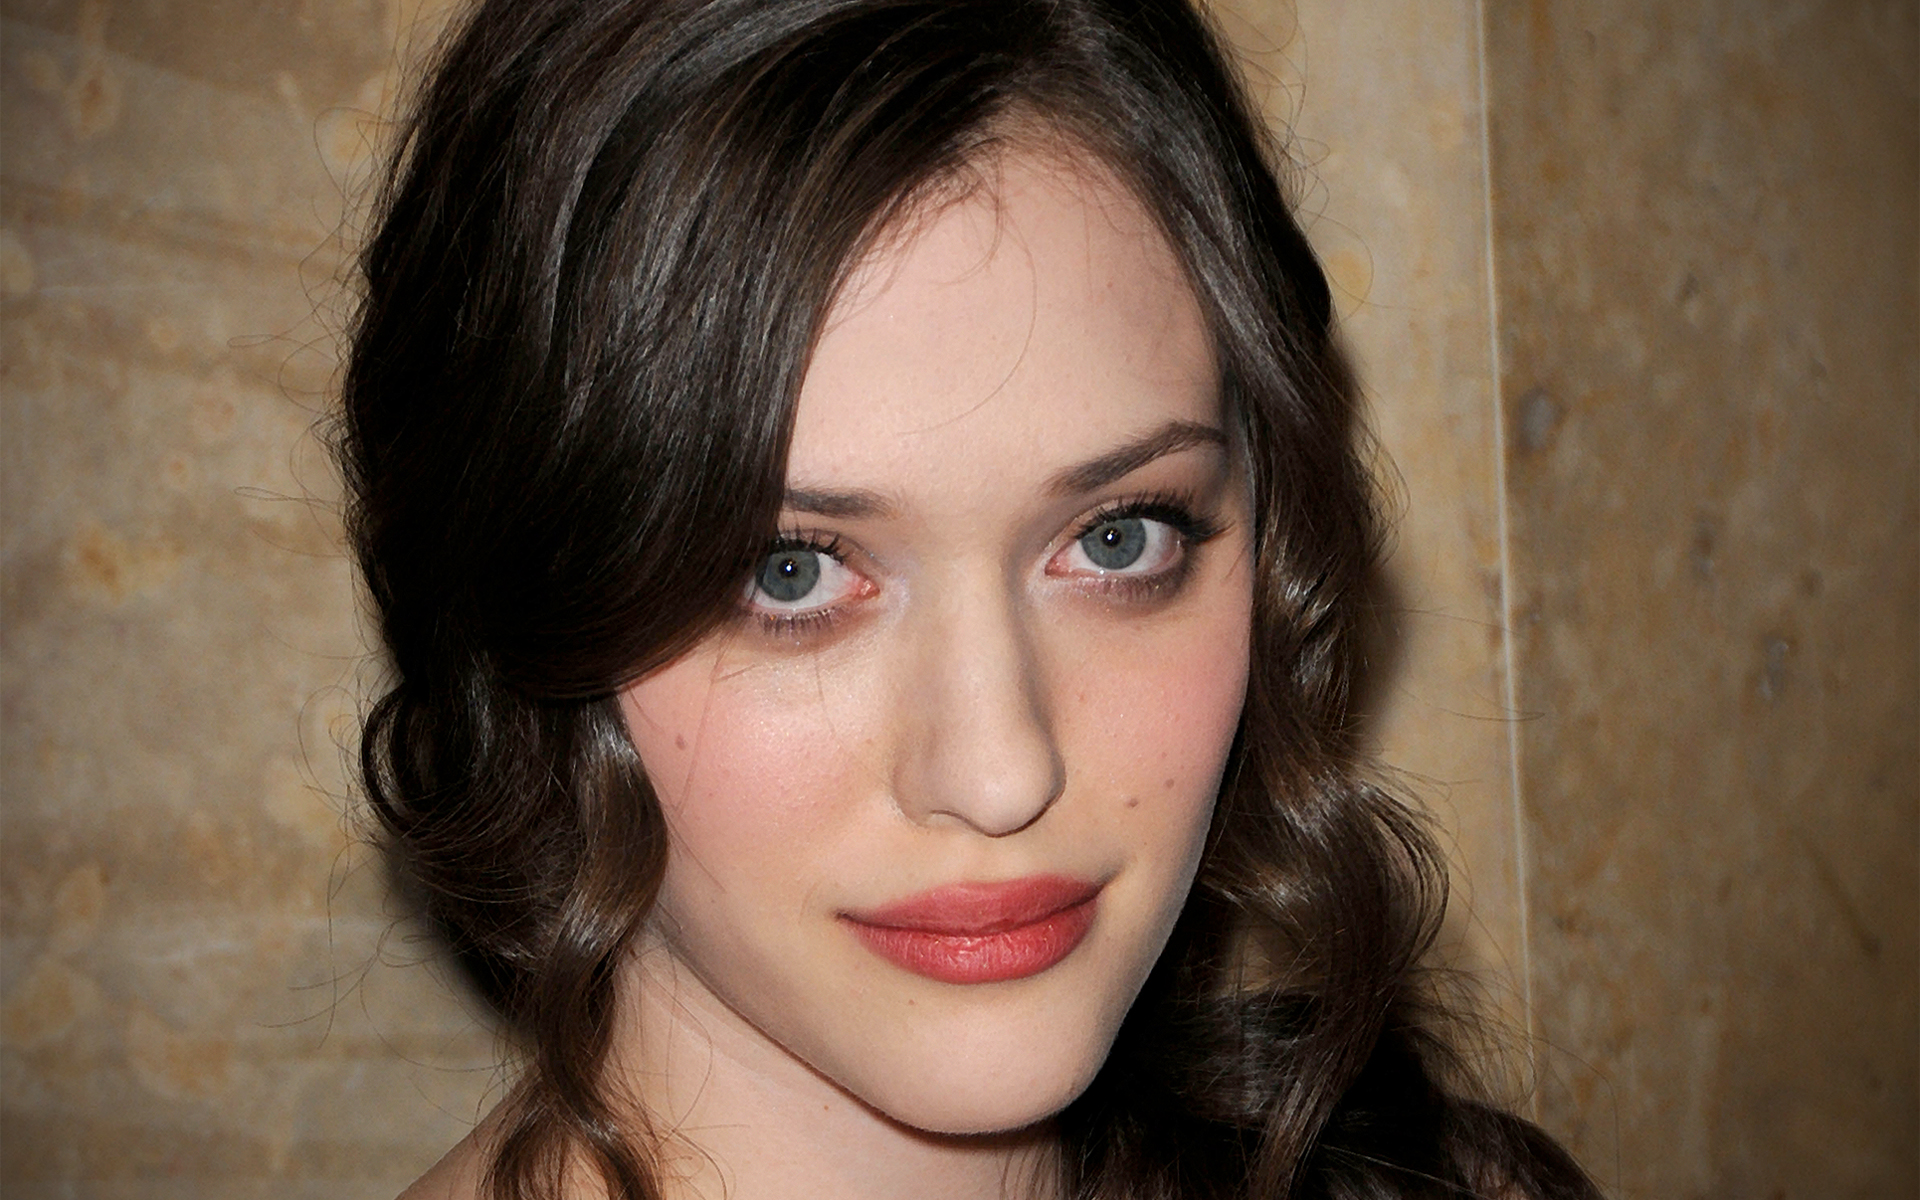 kat dennings free hd latest pictures download